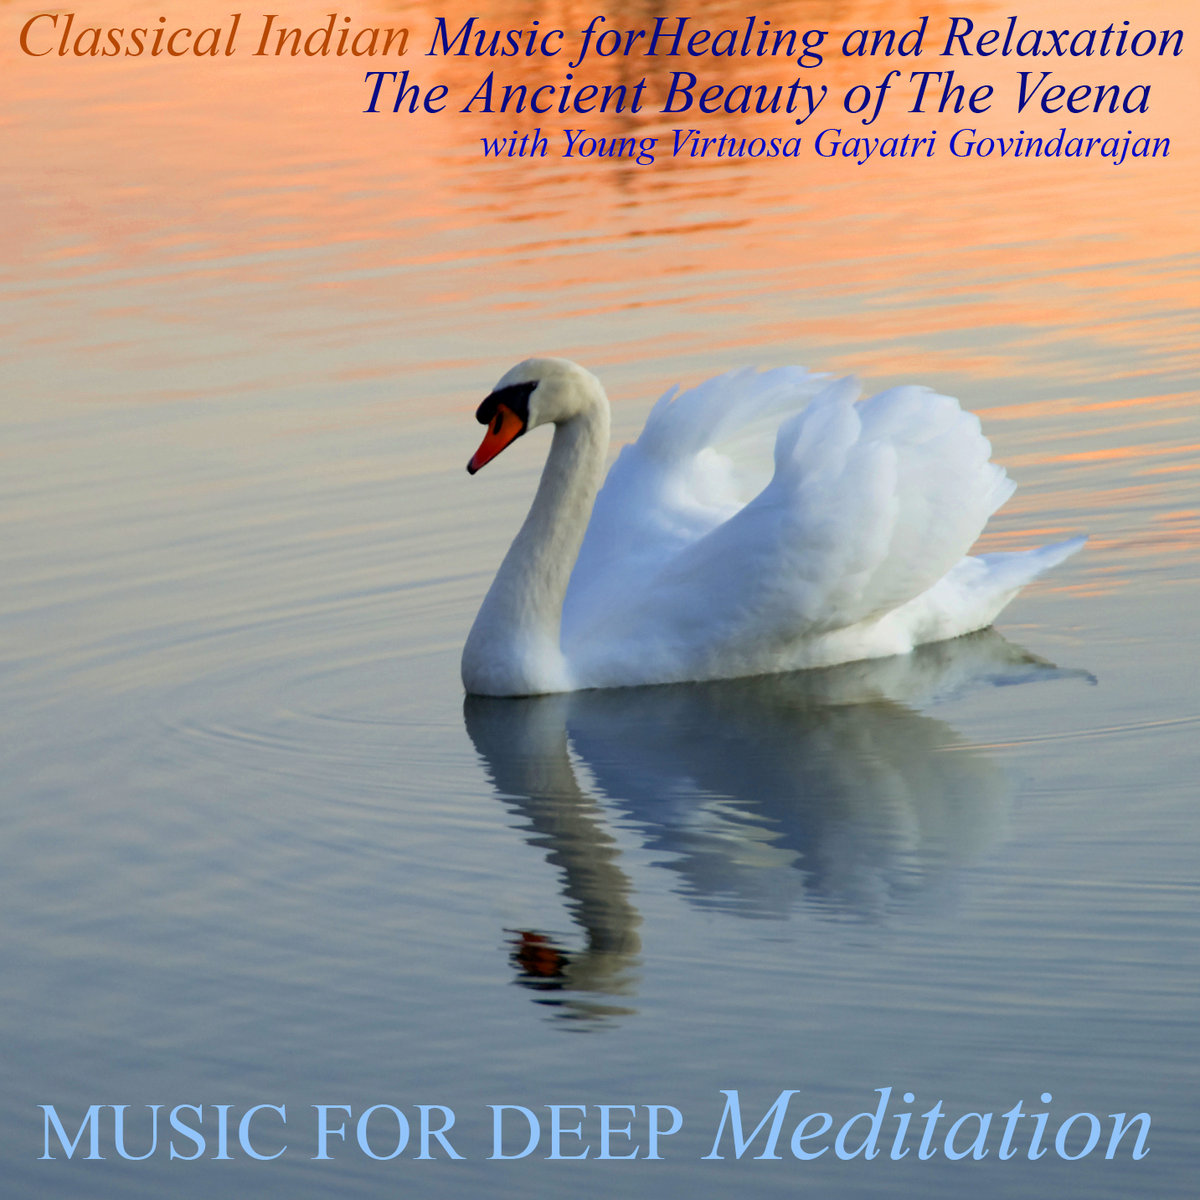 Classical Indian Music for Healing and Relaxation: The